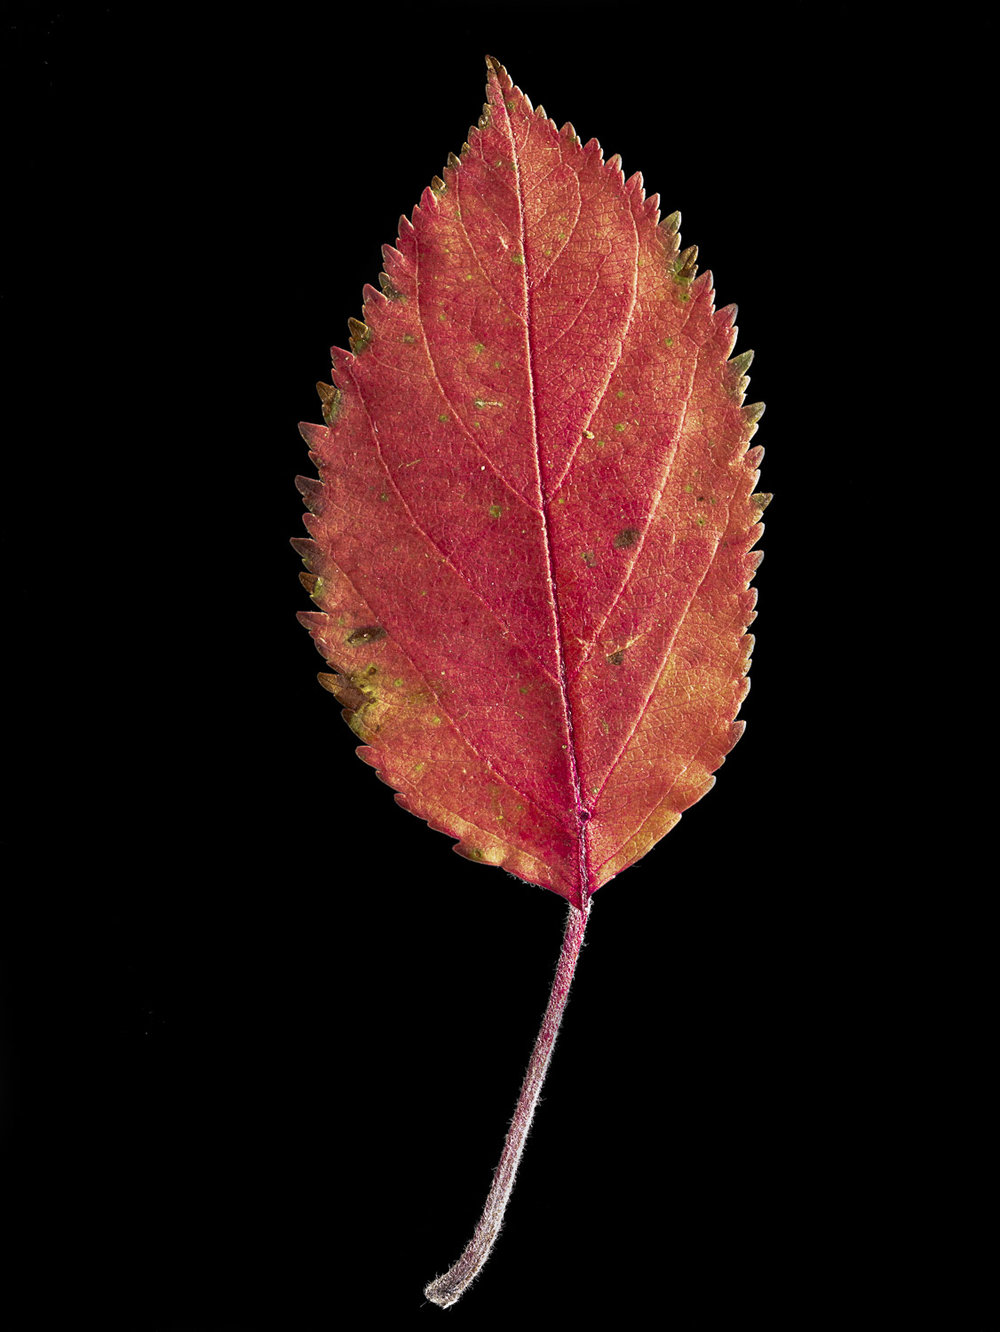 Dried Leaf #6, 2009